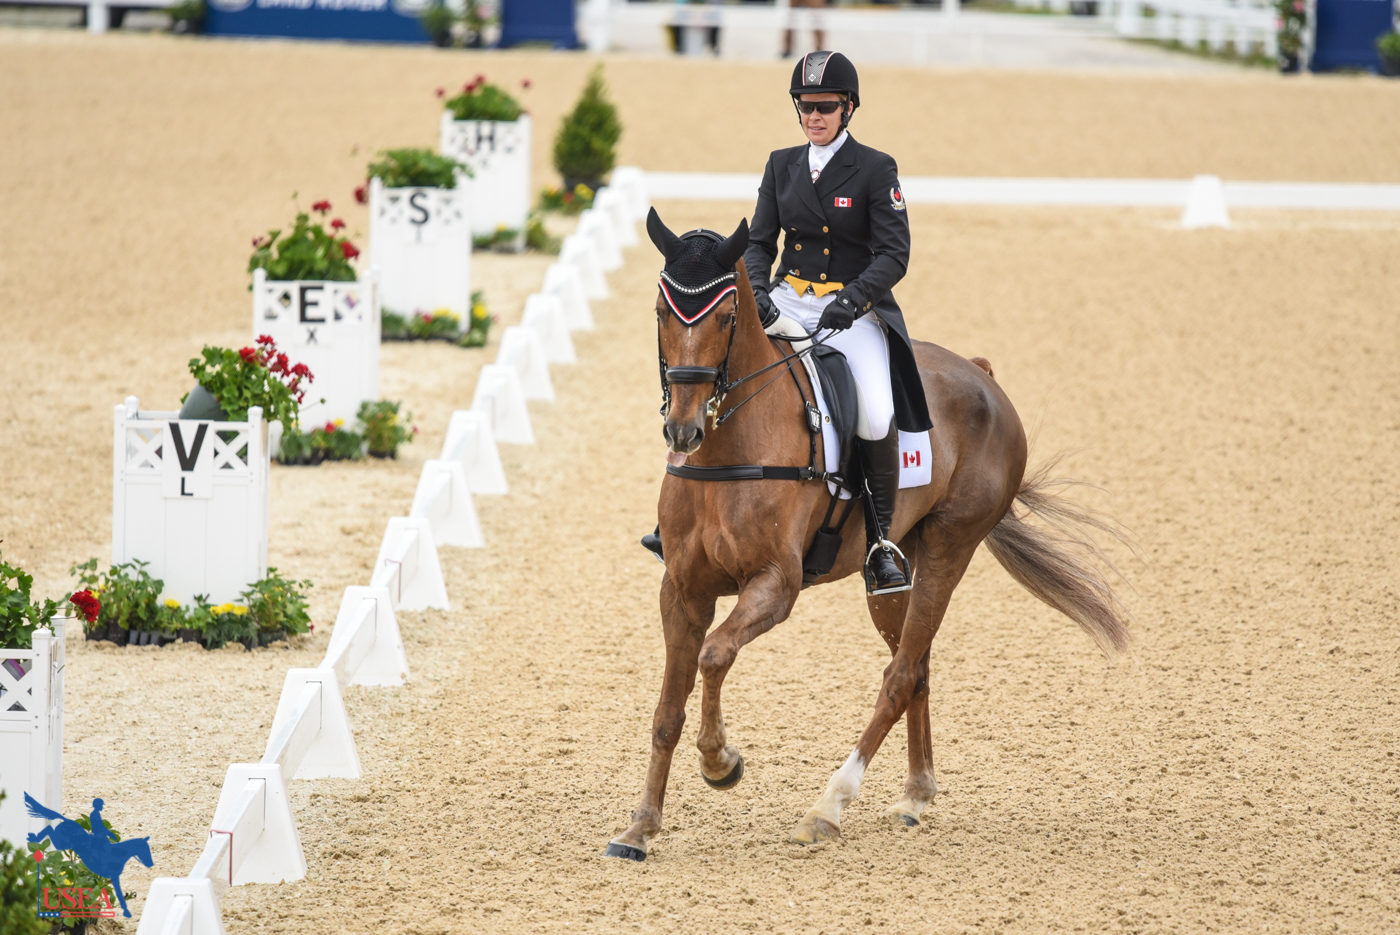 15th - Lisa Marie Fergusson and Honor Me - 40.9